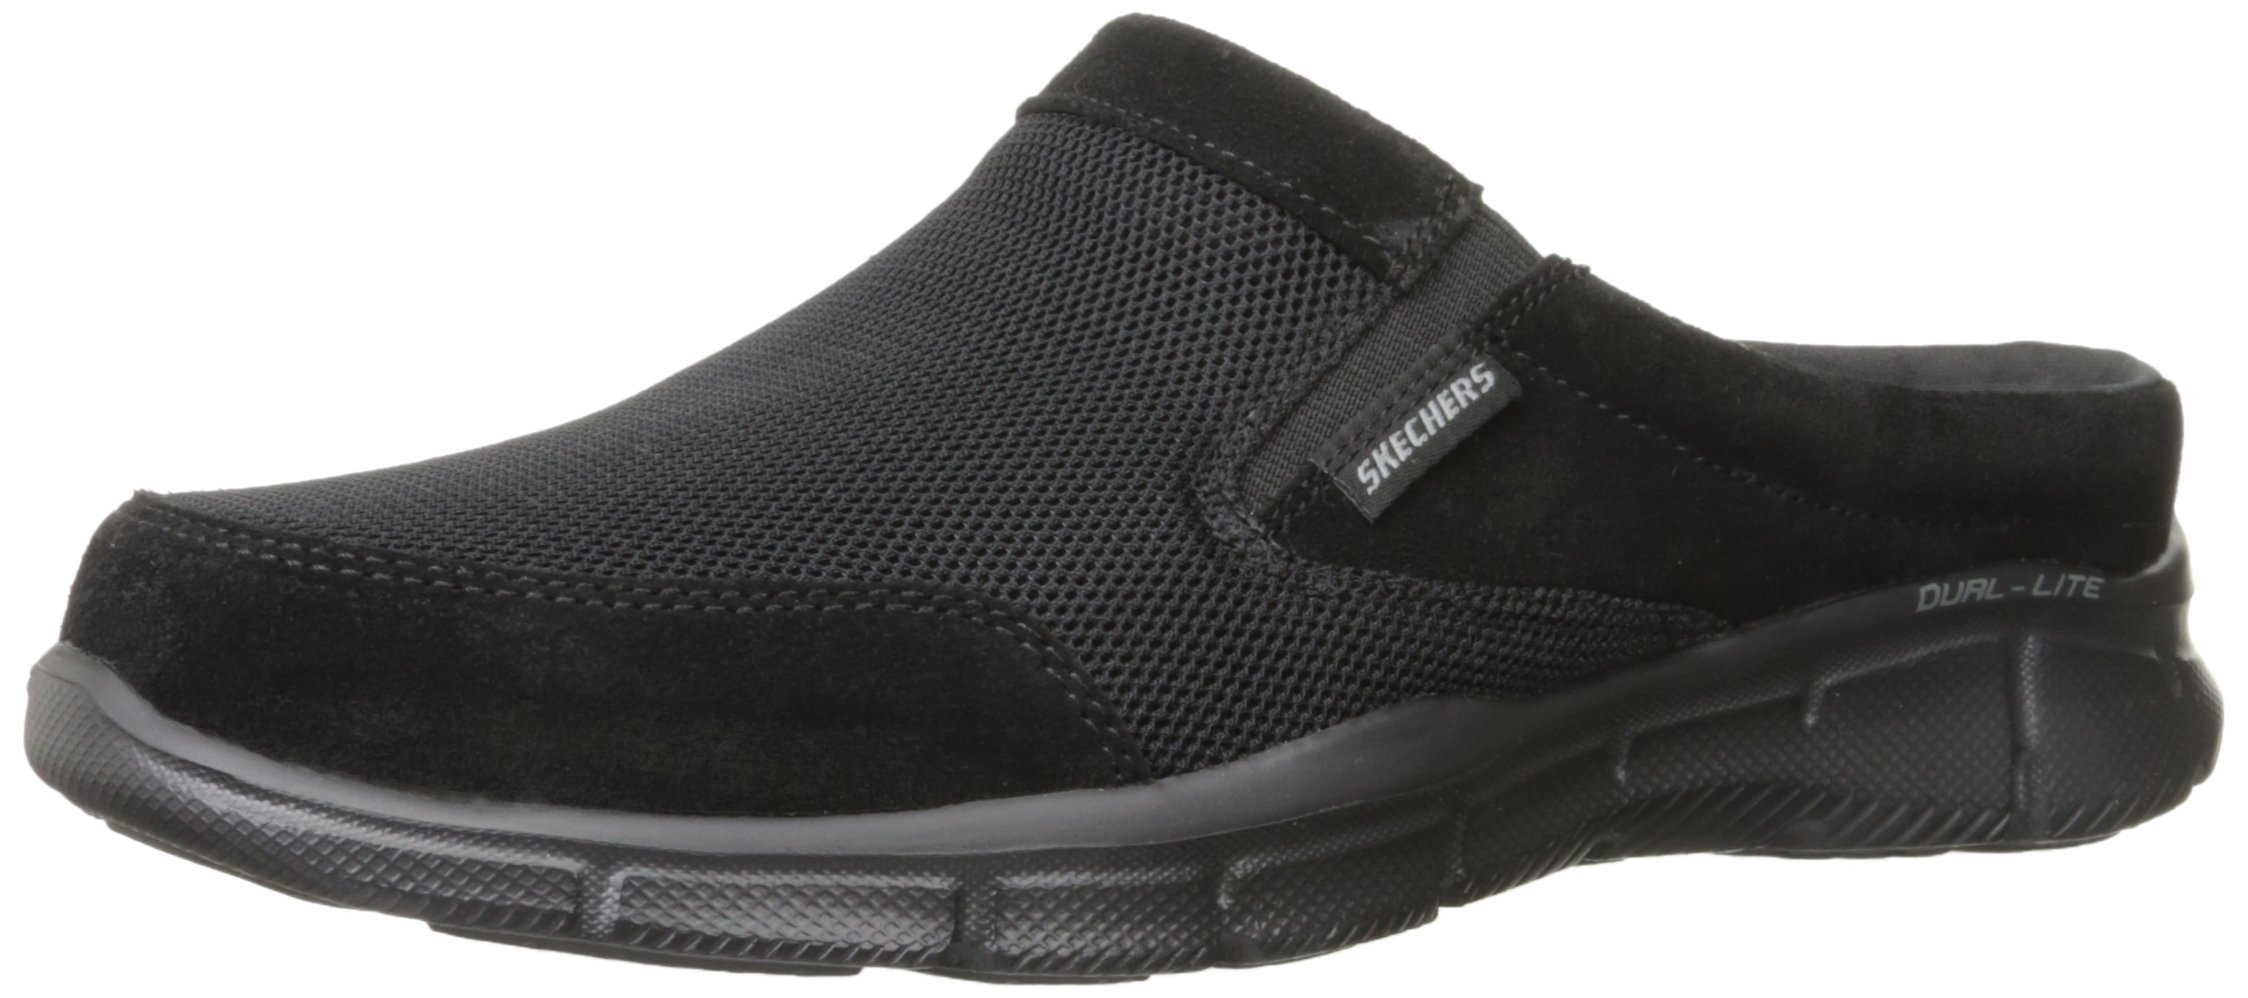 Skechers Sport Men's Equalizer Coast to Coast Mule,Black,8 M US by Skechers